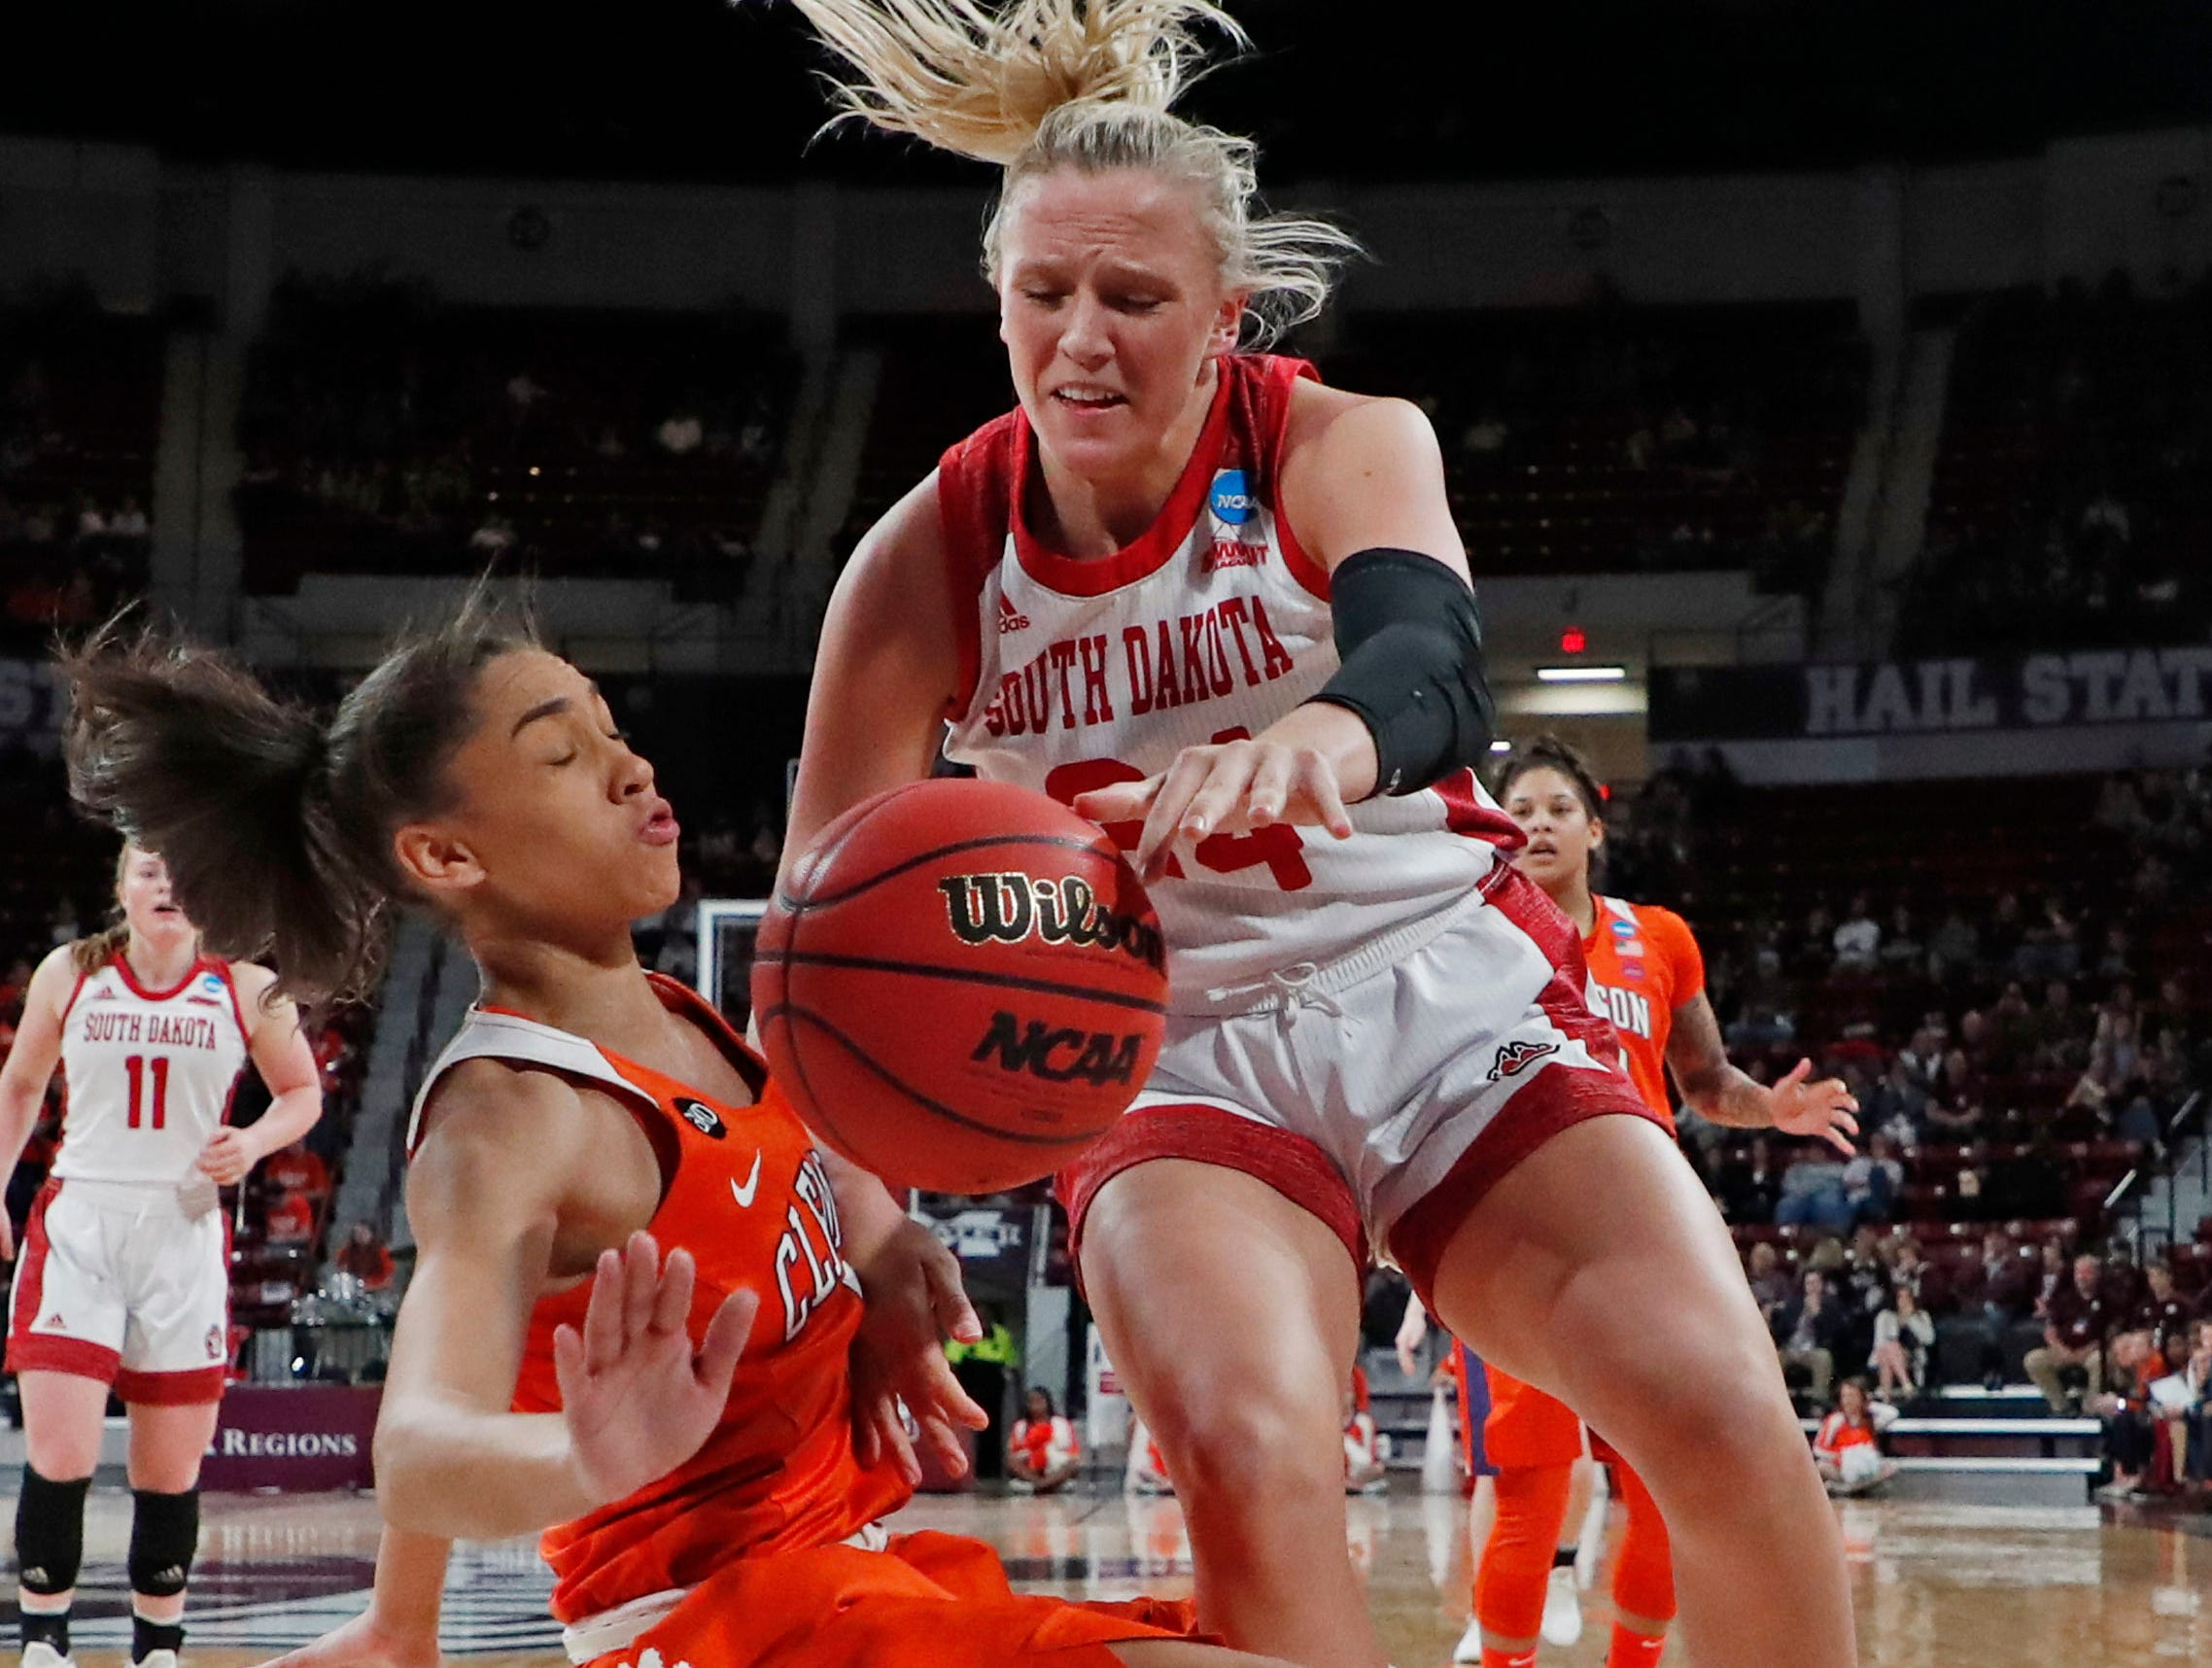 South Dakota center Hannah Sjerven (34) crashes into Clemson guard Danielle Edwards, left, while trying to dribble past in the NCAA Tournament in Starkville, Miss., Friday, March 22, 2019. (AP Photo/Rogelio V. Solis)